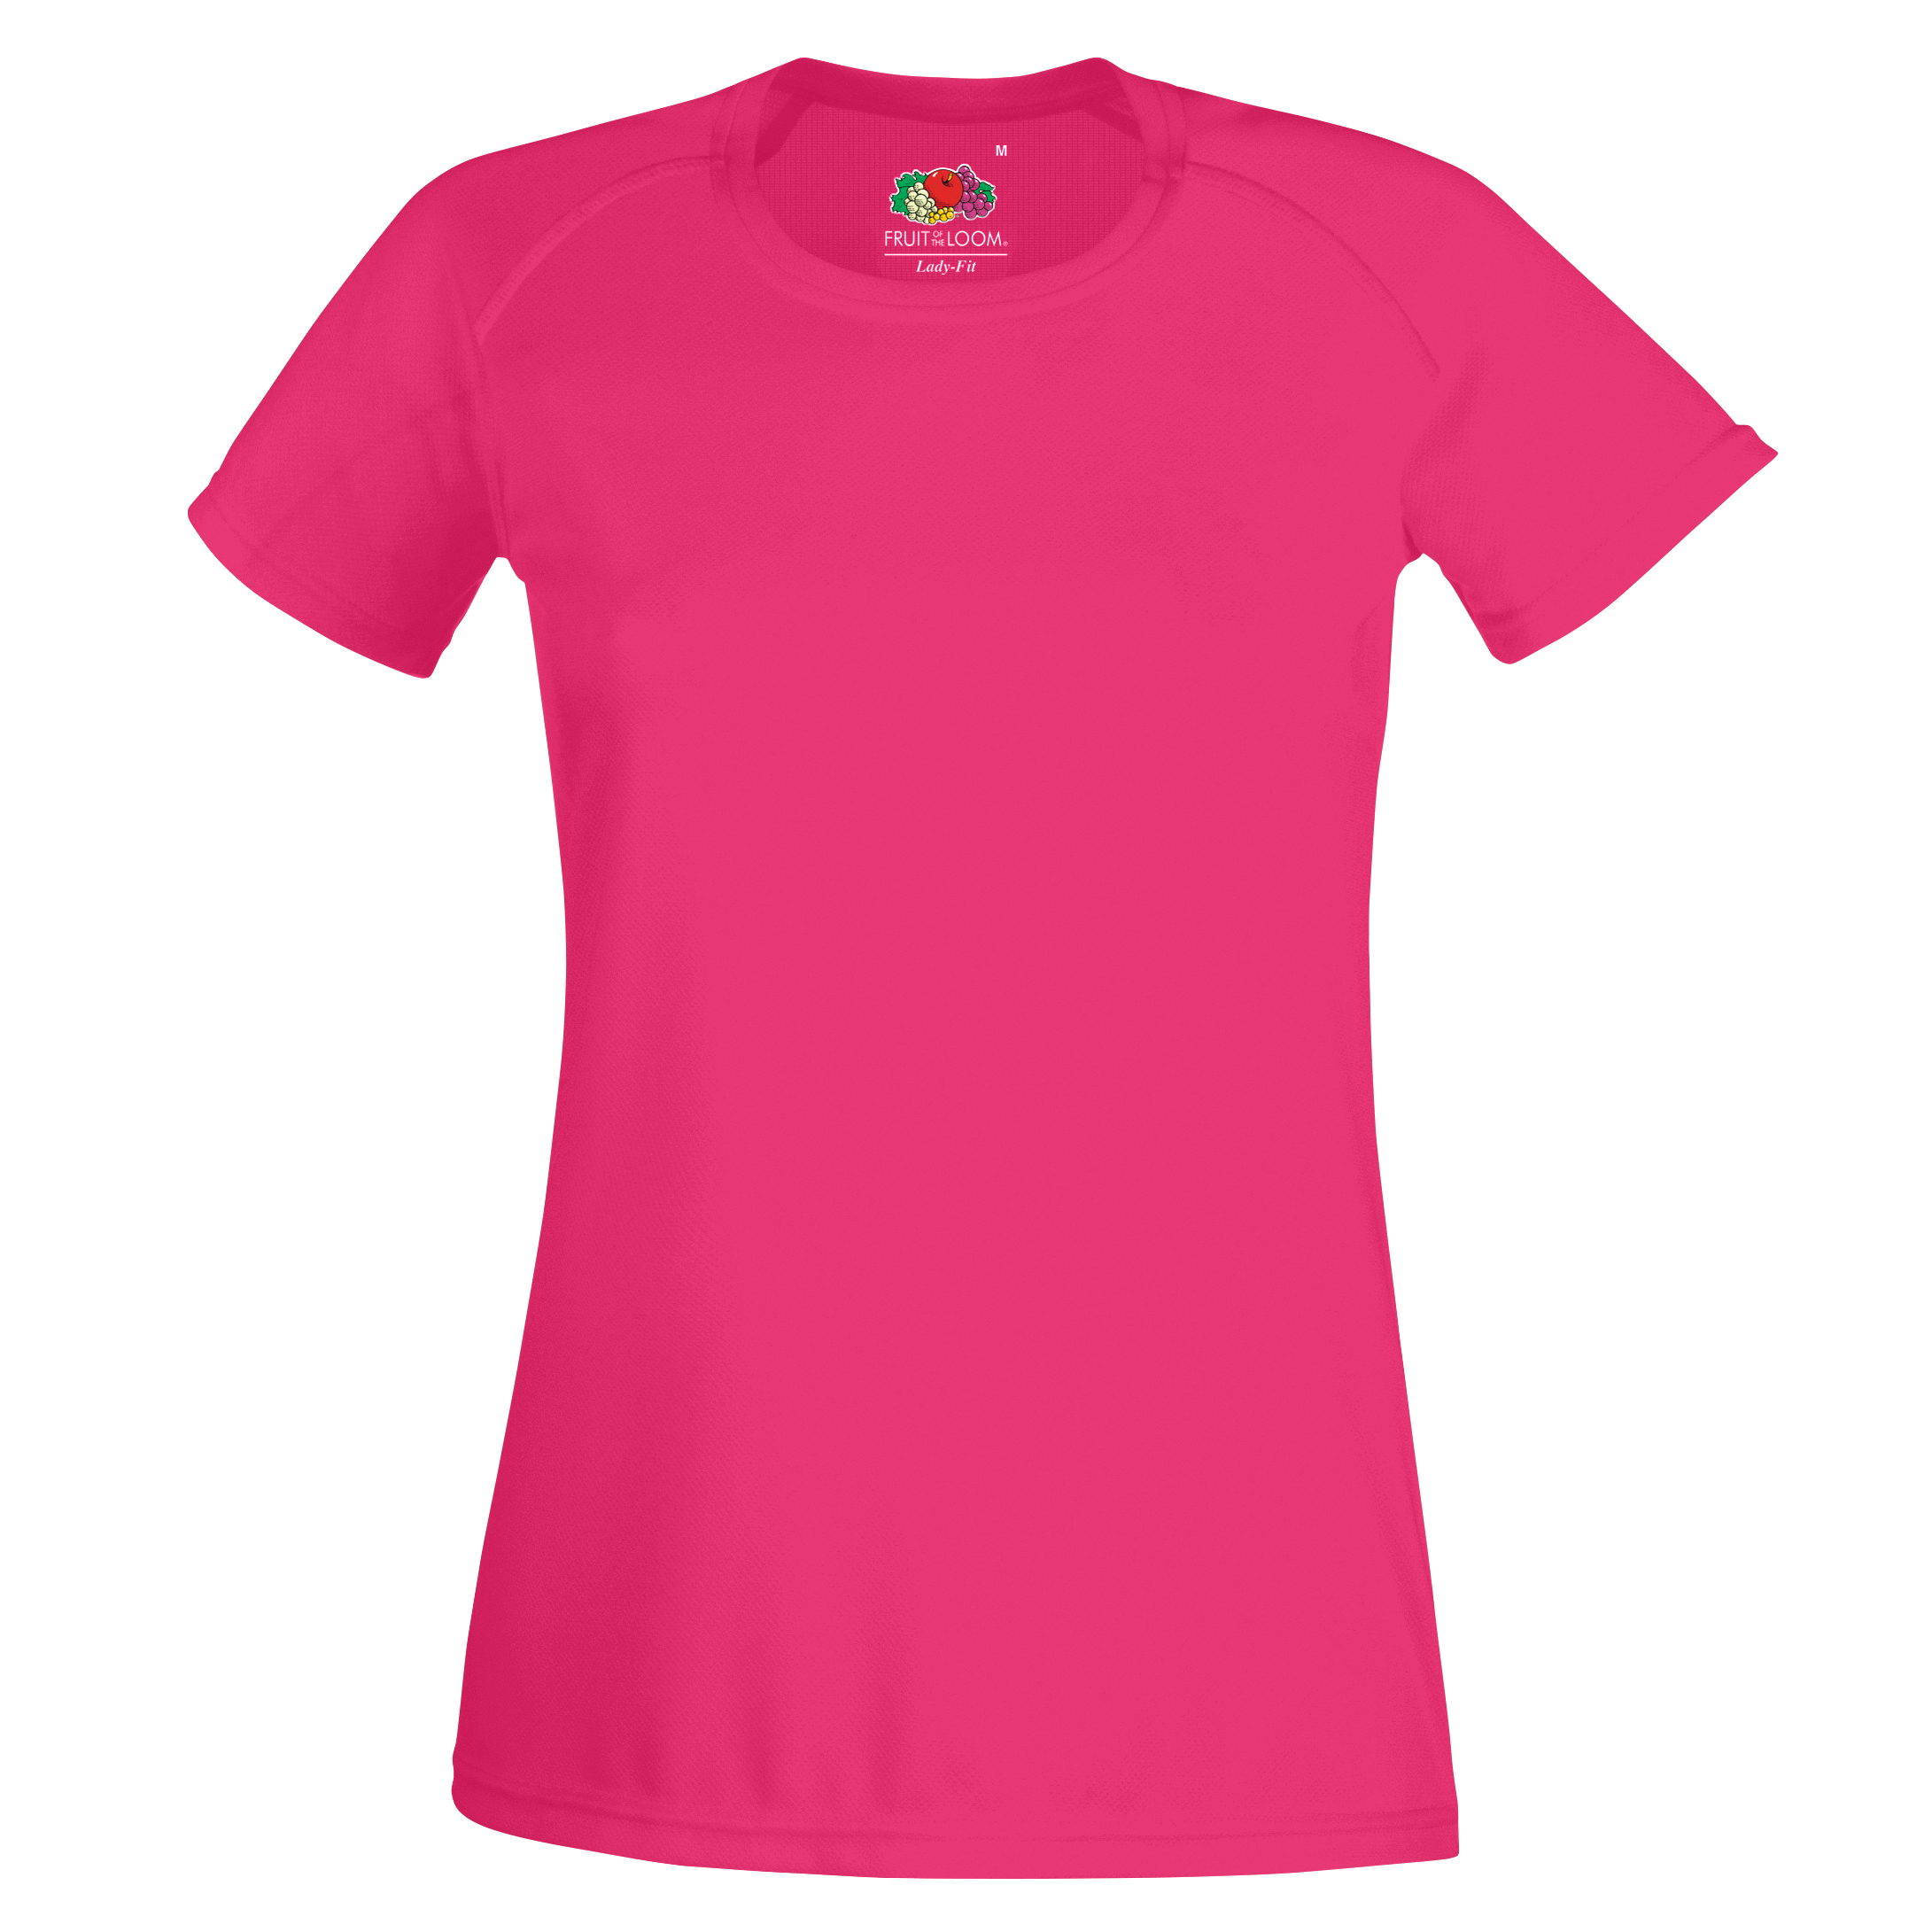 new fruit of the loom womens lady fit performance sports tshirt 4